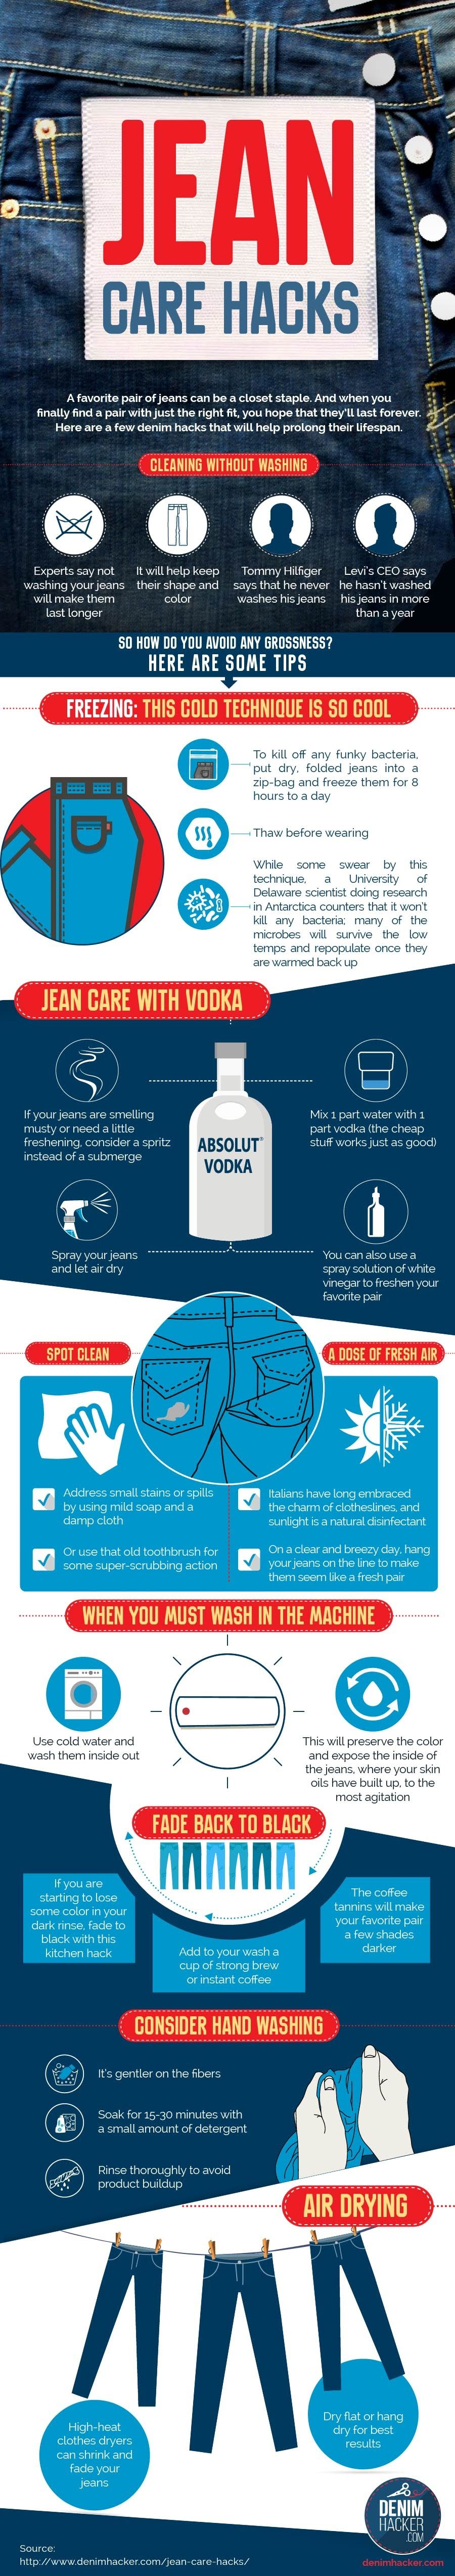 Jean Care Hacks A DIY Approach to Making Your Favorite Jeans Last #infograohic